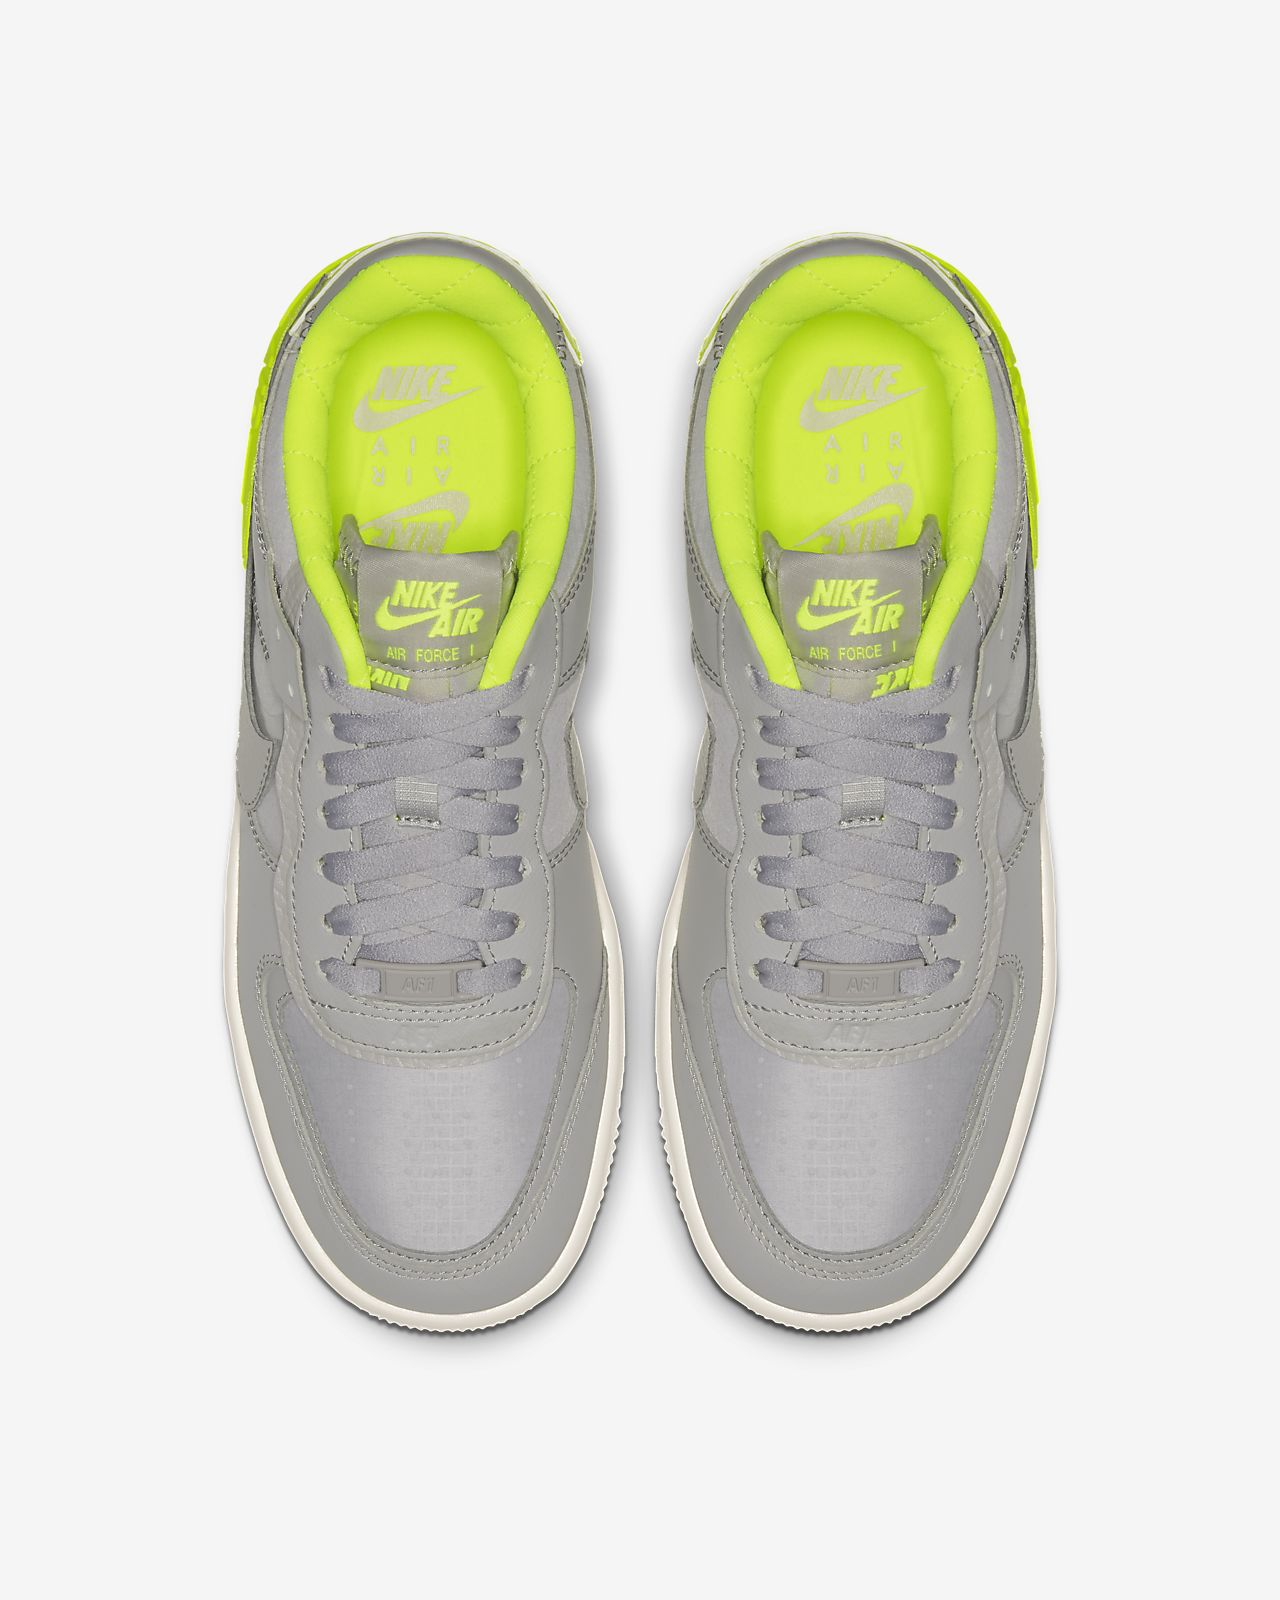 Neon Nike Shoes : Buy Nike Sneakers & Shoes | Air force 1